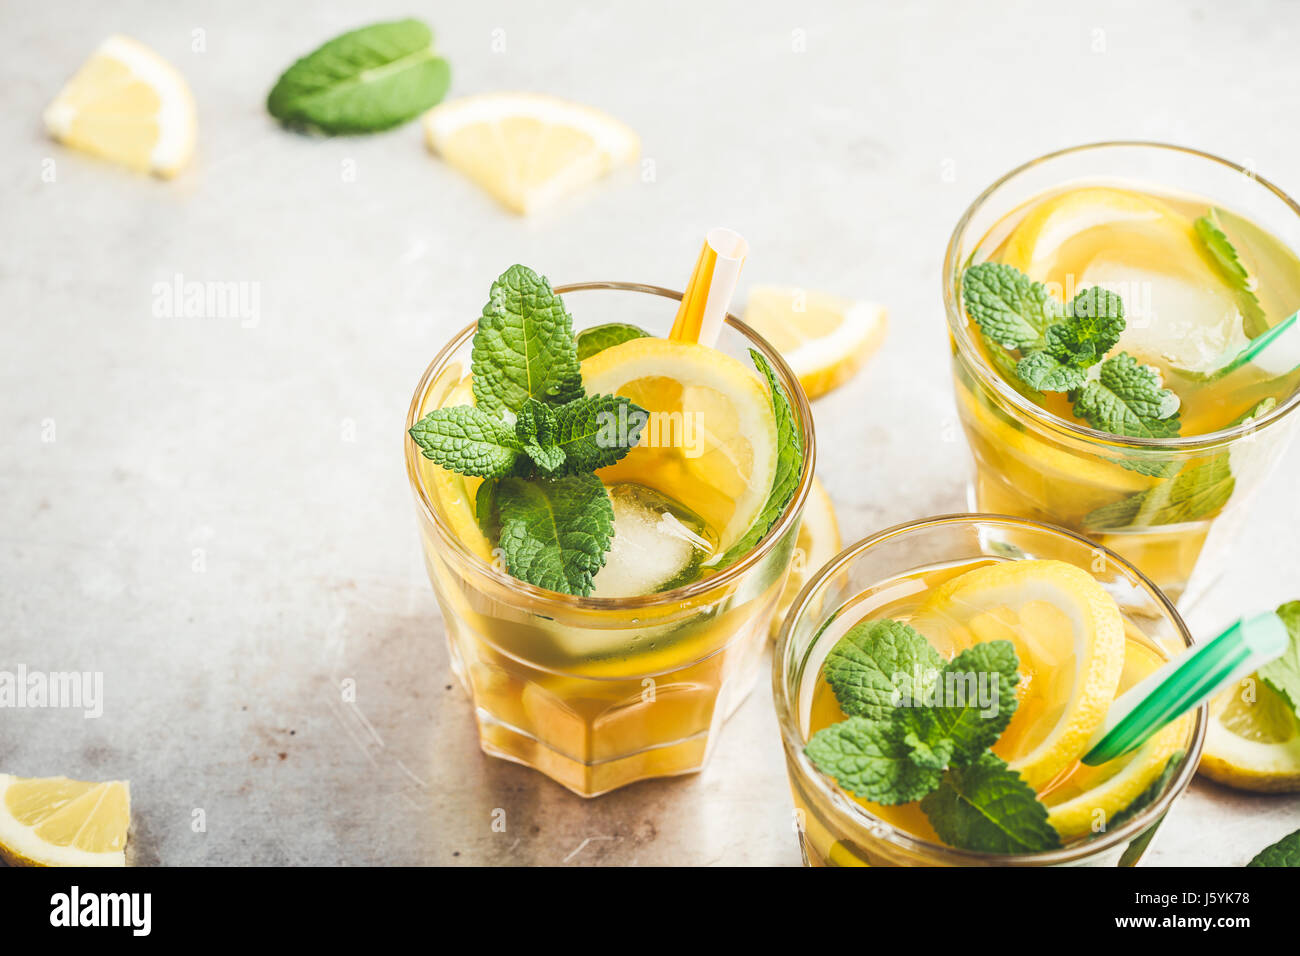 Homemade iced lemon sweet tea with mint on light gray table, delicious refreshment summer drink Stock Photo